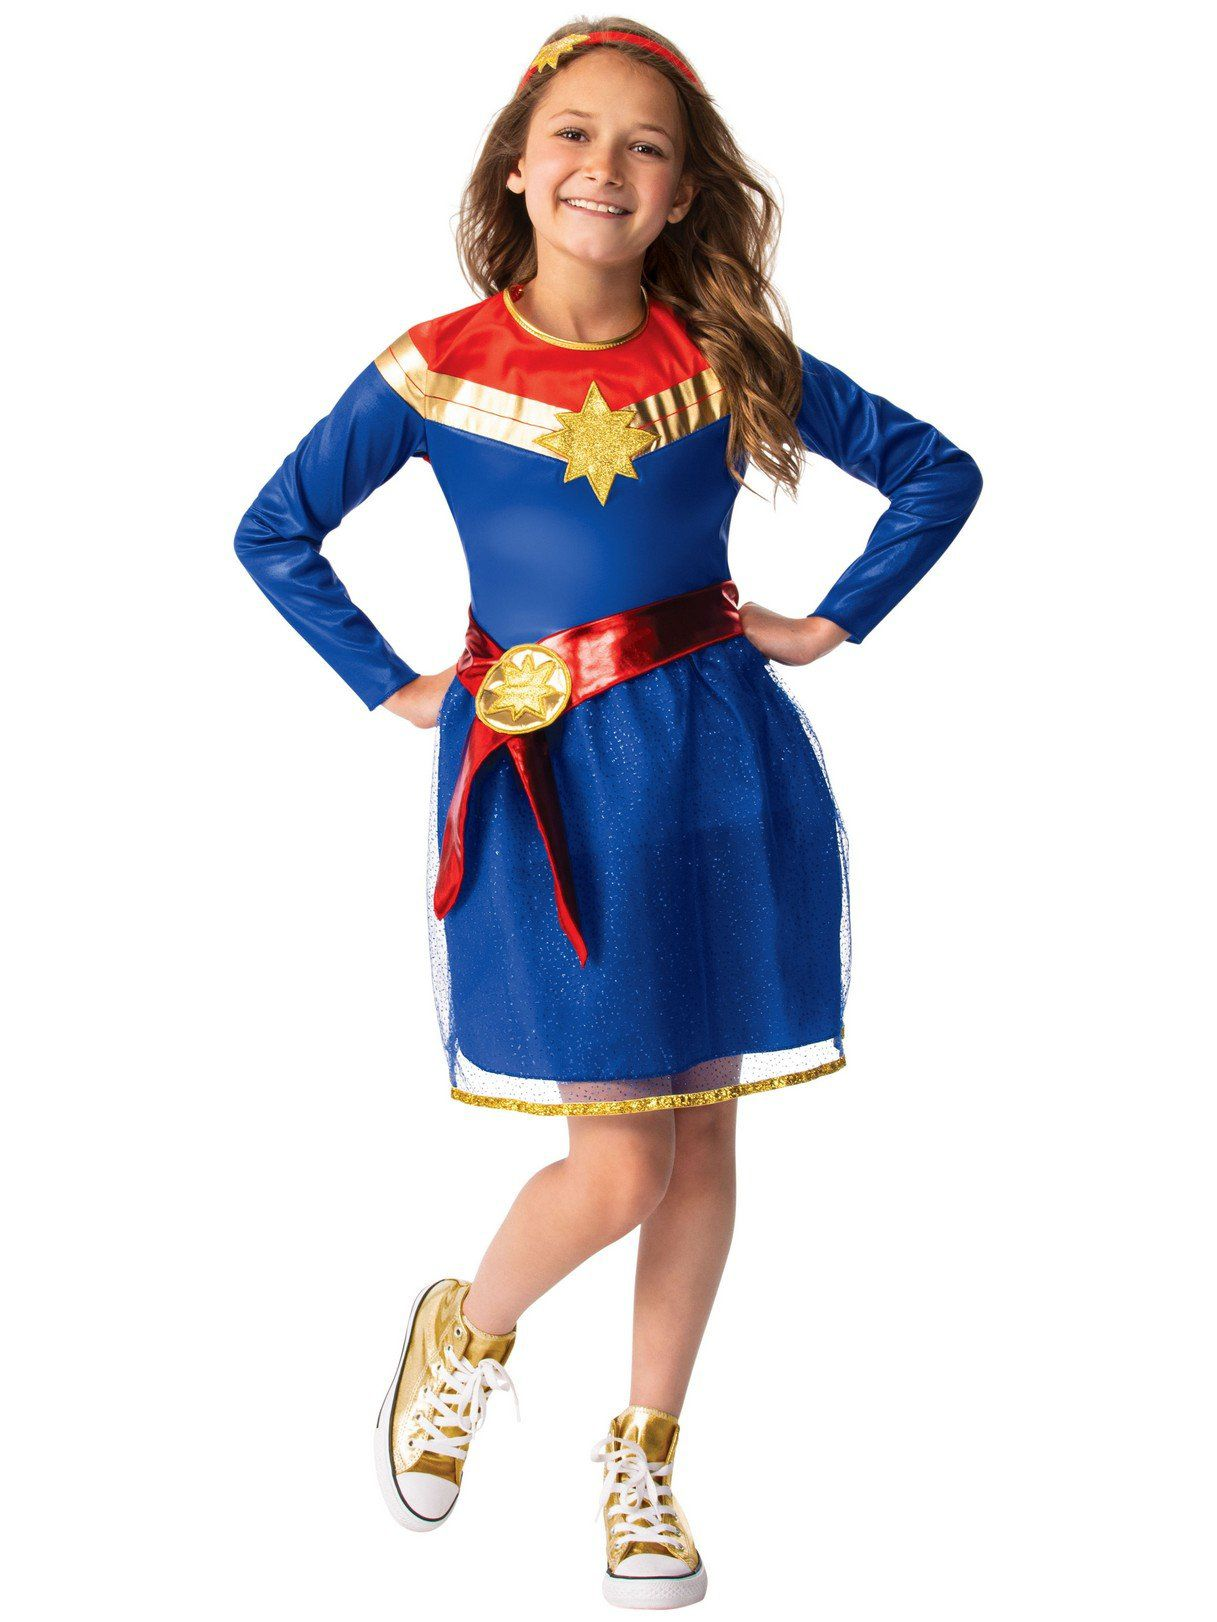 Captain Marvel Tutu Dress Costume For Kids Buy products such as captain marvel cosplay tutu tulle dress (little girls & big girls) at walmart and save. captain marvel tutu dress costume for kids